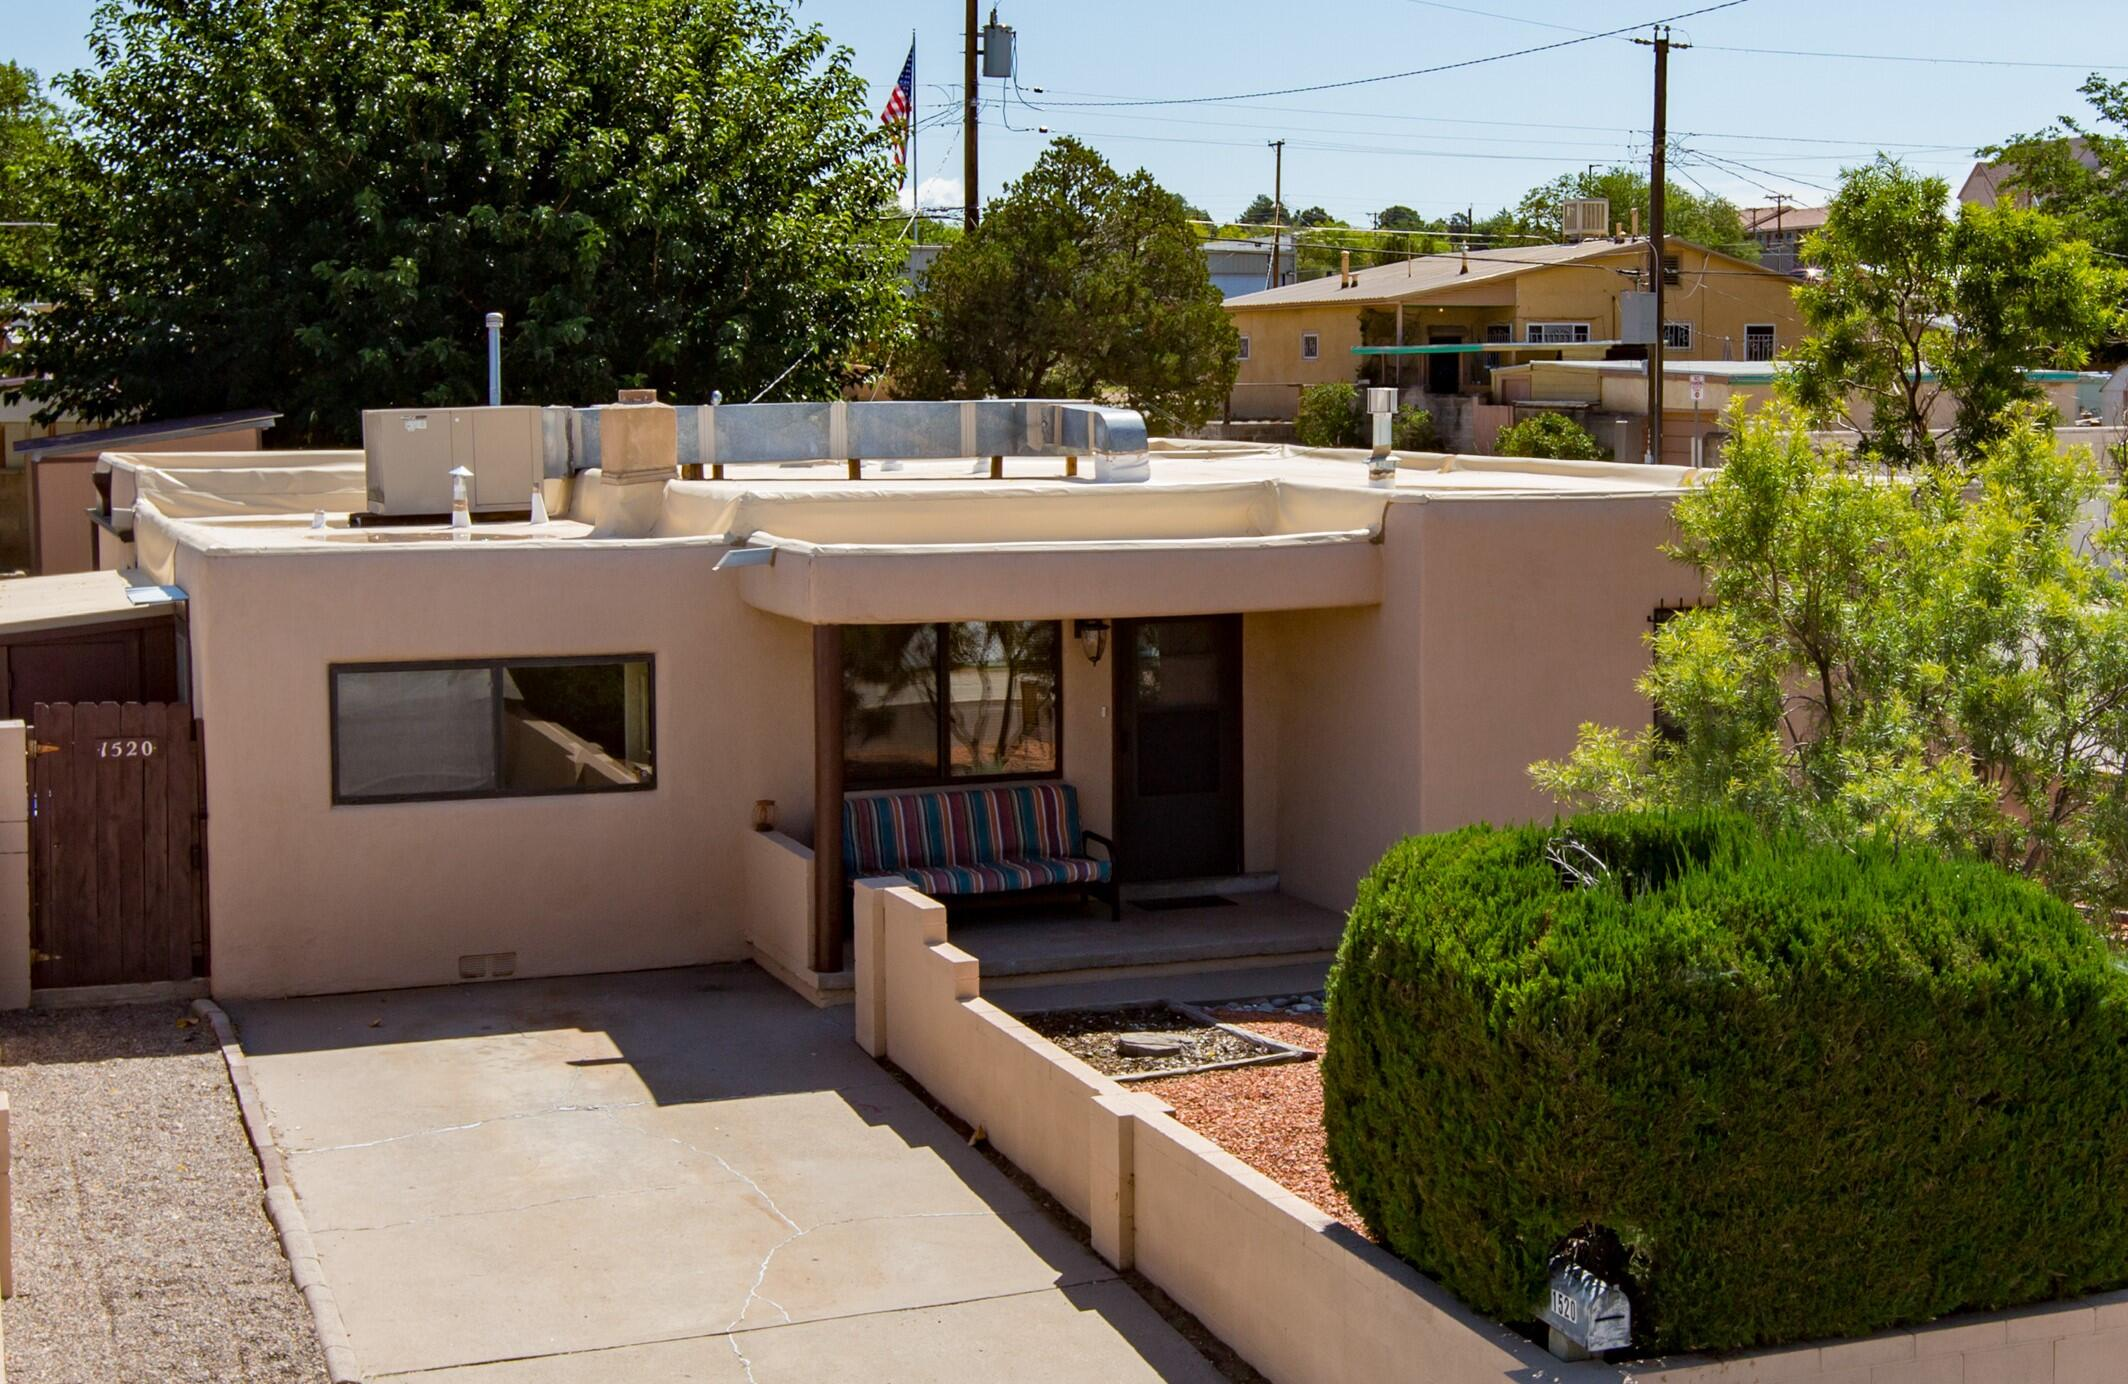 UNM Home for Sale! Move in Ready. LOCATED Near UNM Football Stadium and Isotopes Park. Rare UPDATED 5 Bedroom home with 2 Baths, Large Living Room in front and Family Room at the rear. All New Flooring. Fully landscaped with Tree shaded backyard. Newer roof, stucco, gutters and electrical panel. Kitchen Updated with appliances, counter tops, flooring and painted cabinets. Baths Updated with flooring, shower surround and fixtures. Your buyers will love it.